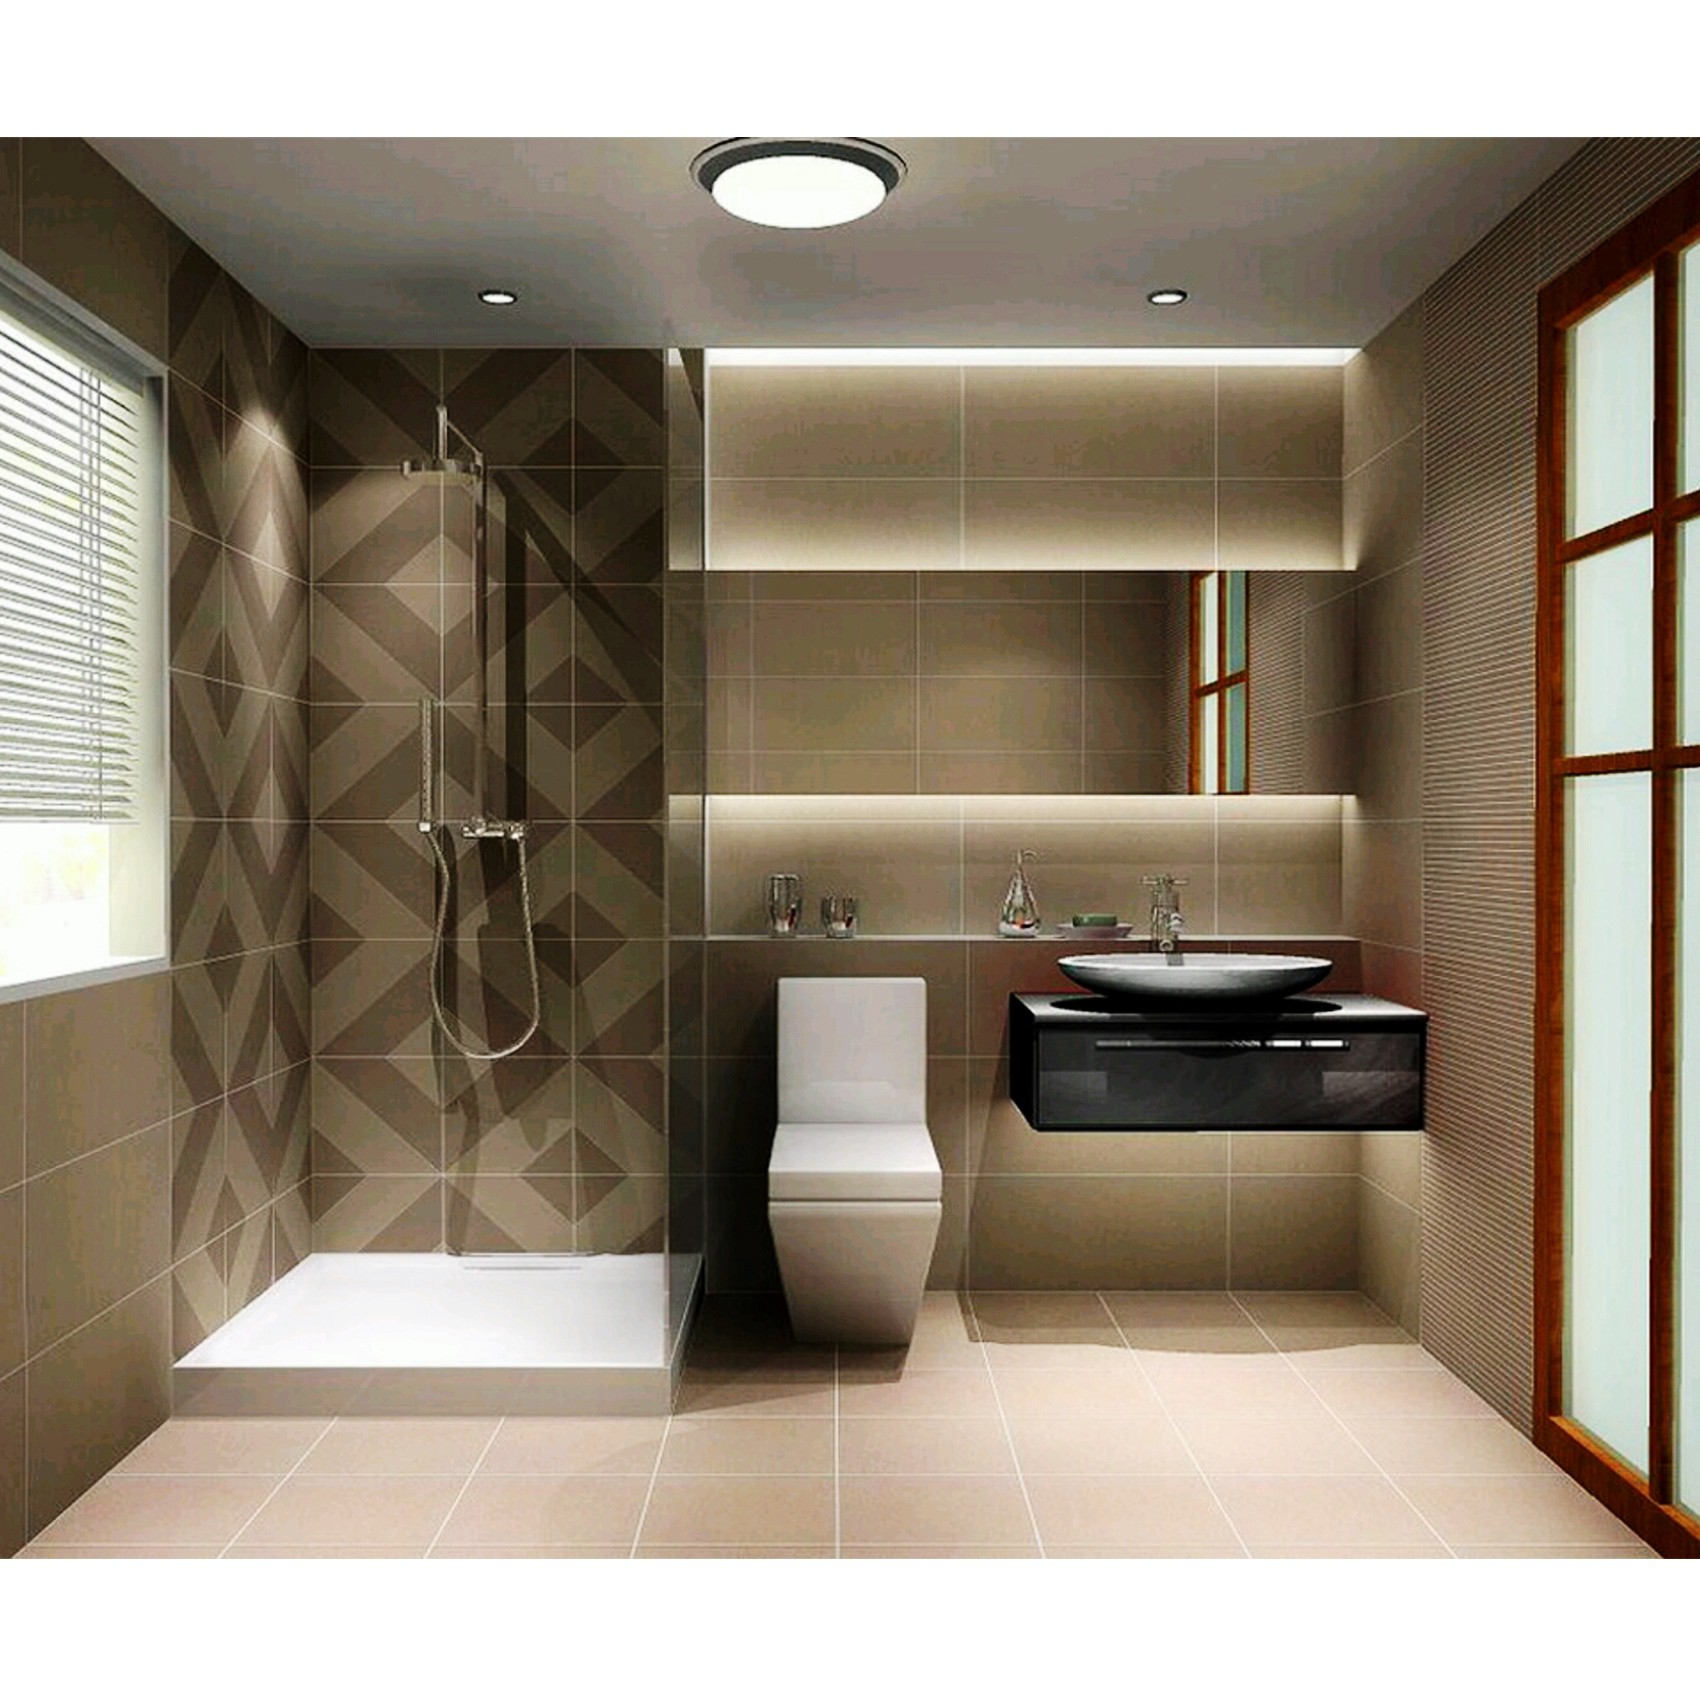 Luxurious Modern Bathroom Interior Design Ideas By Taylor Everest Medium